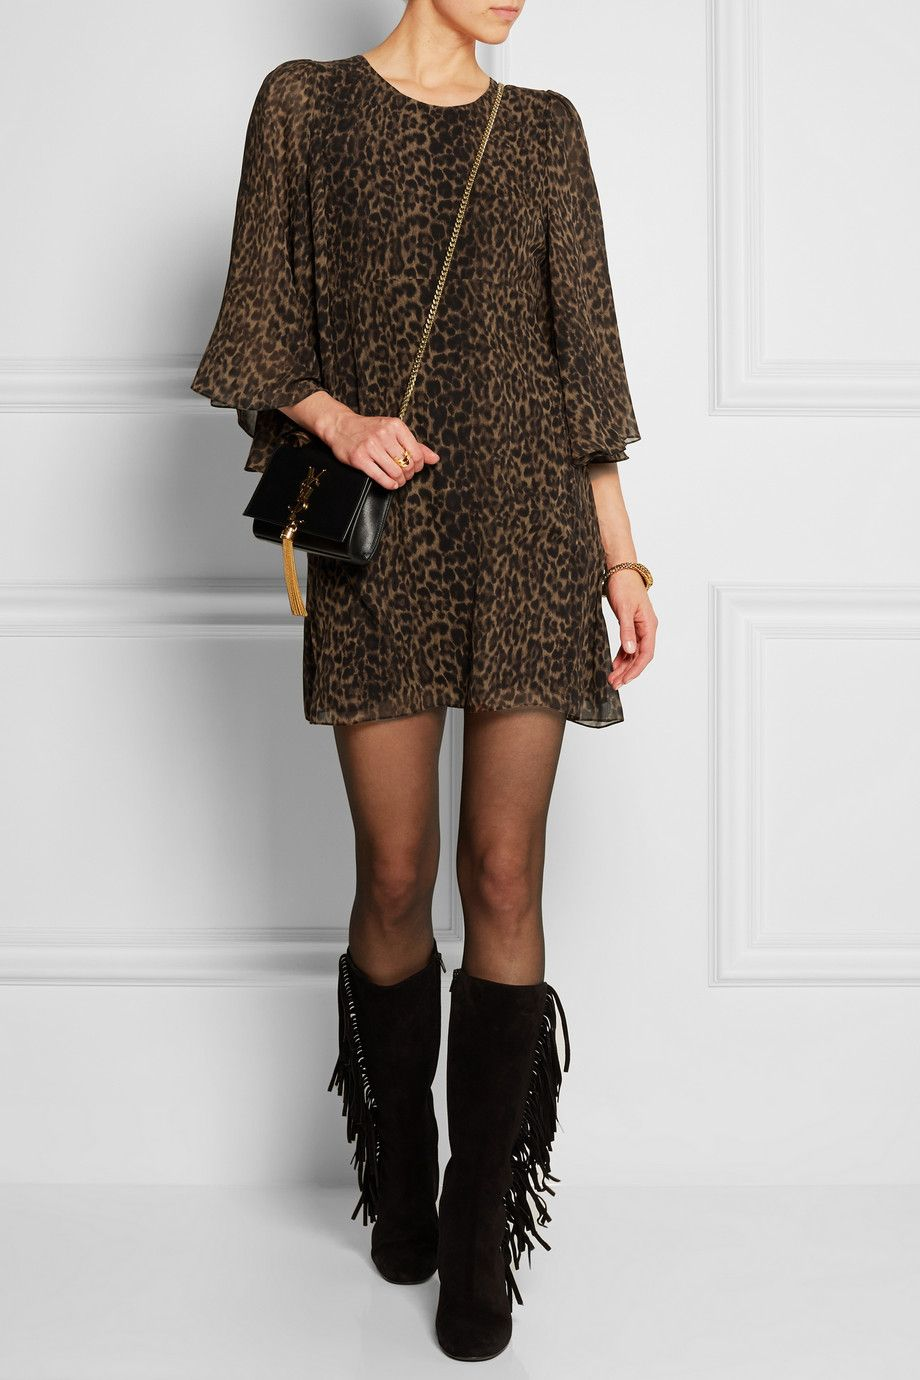 the flow of this leopard dress...I'd like it with more classic accessories i think...play down the boho.